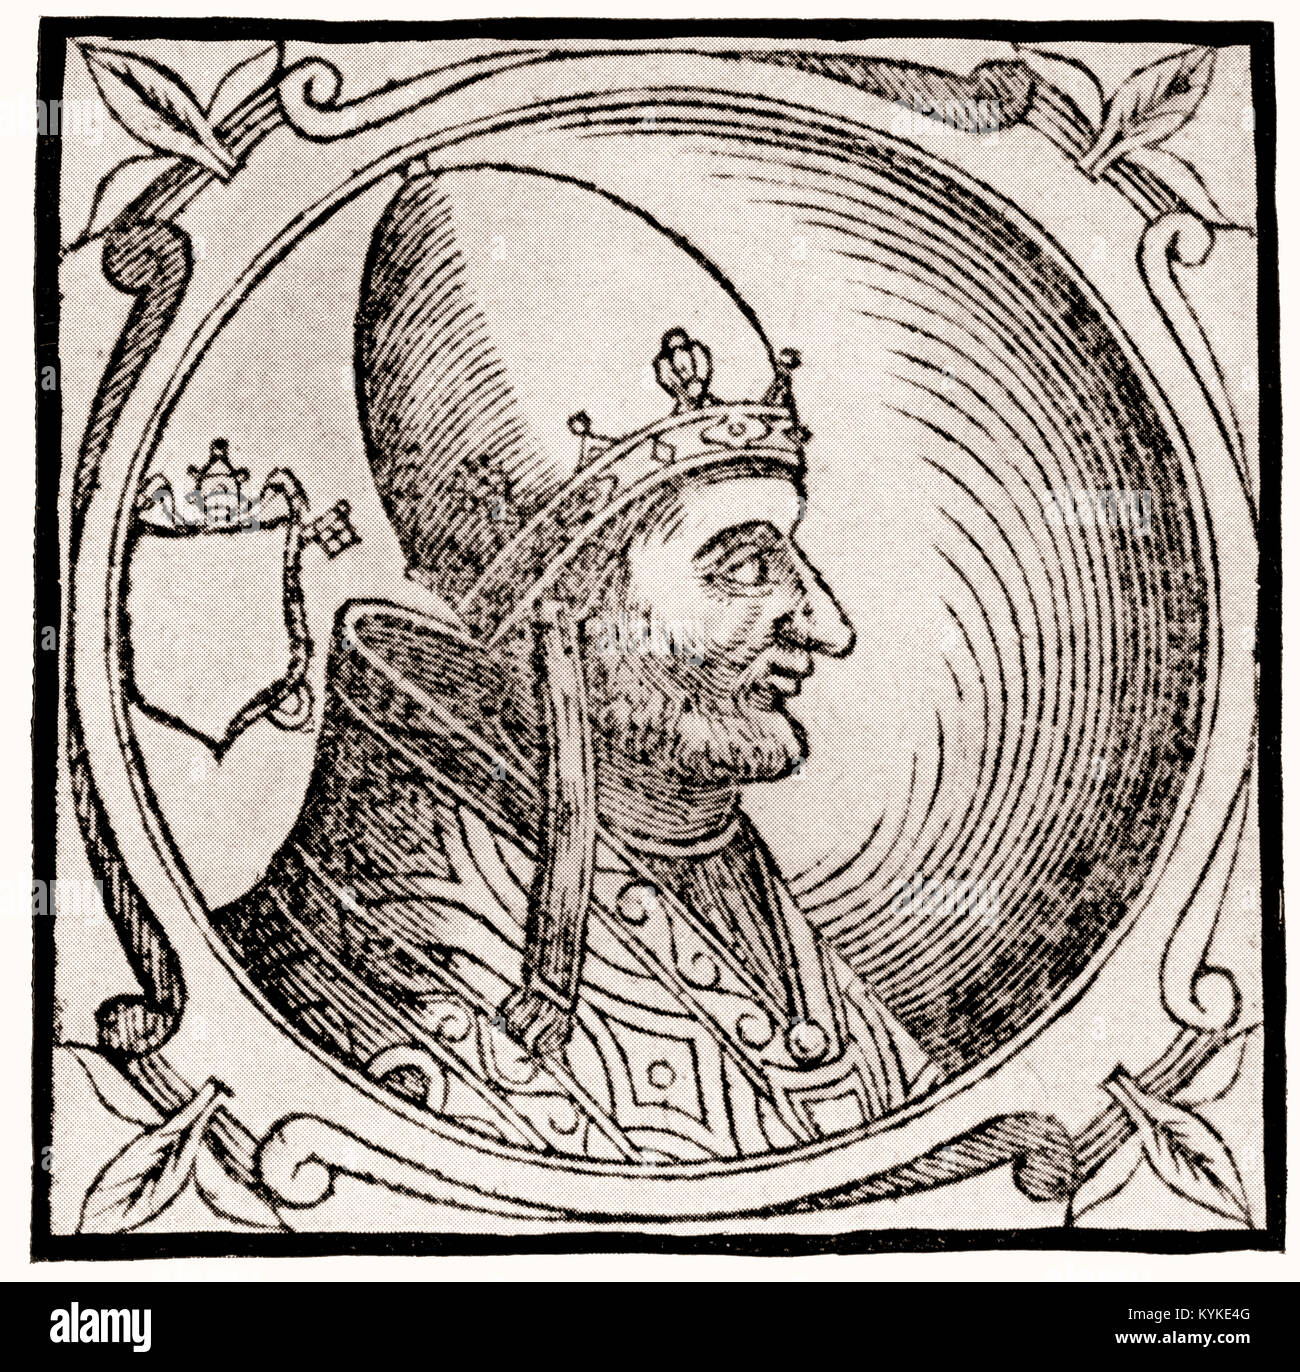 Pope Adrian IV or Adrianus IV, born Nicholas Breakspear, pope from 1154 to 1159, - Stock Image